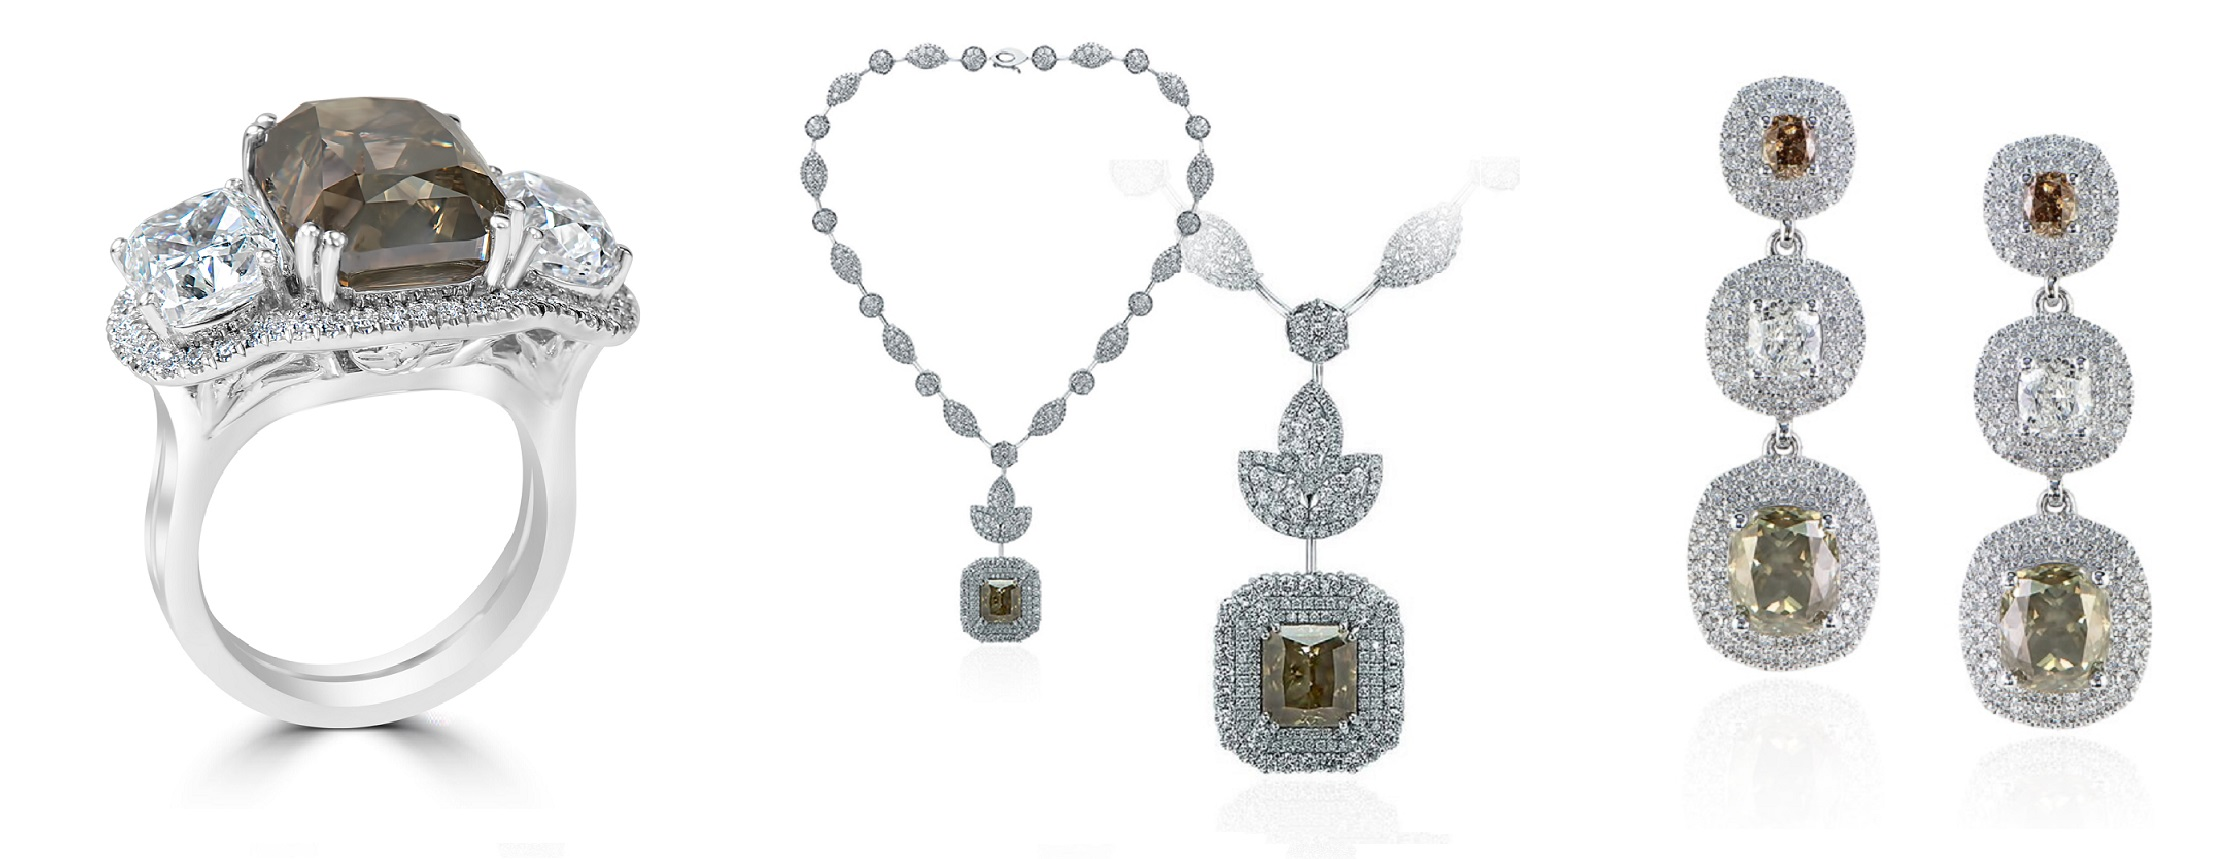 Mixed Green & Brown Diamond Ring, Necklace & Earrings Set (75.08ct TW)